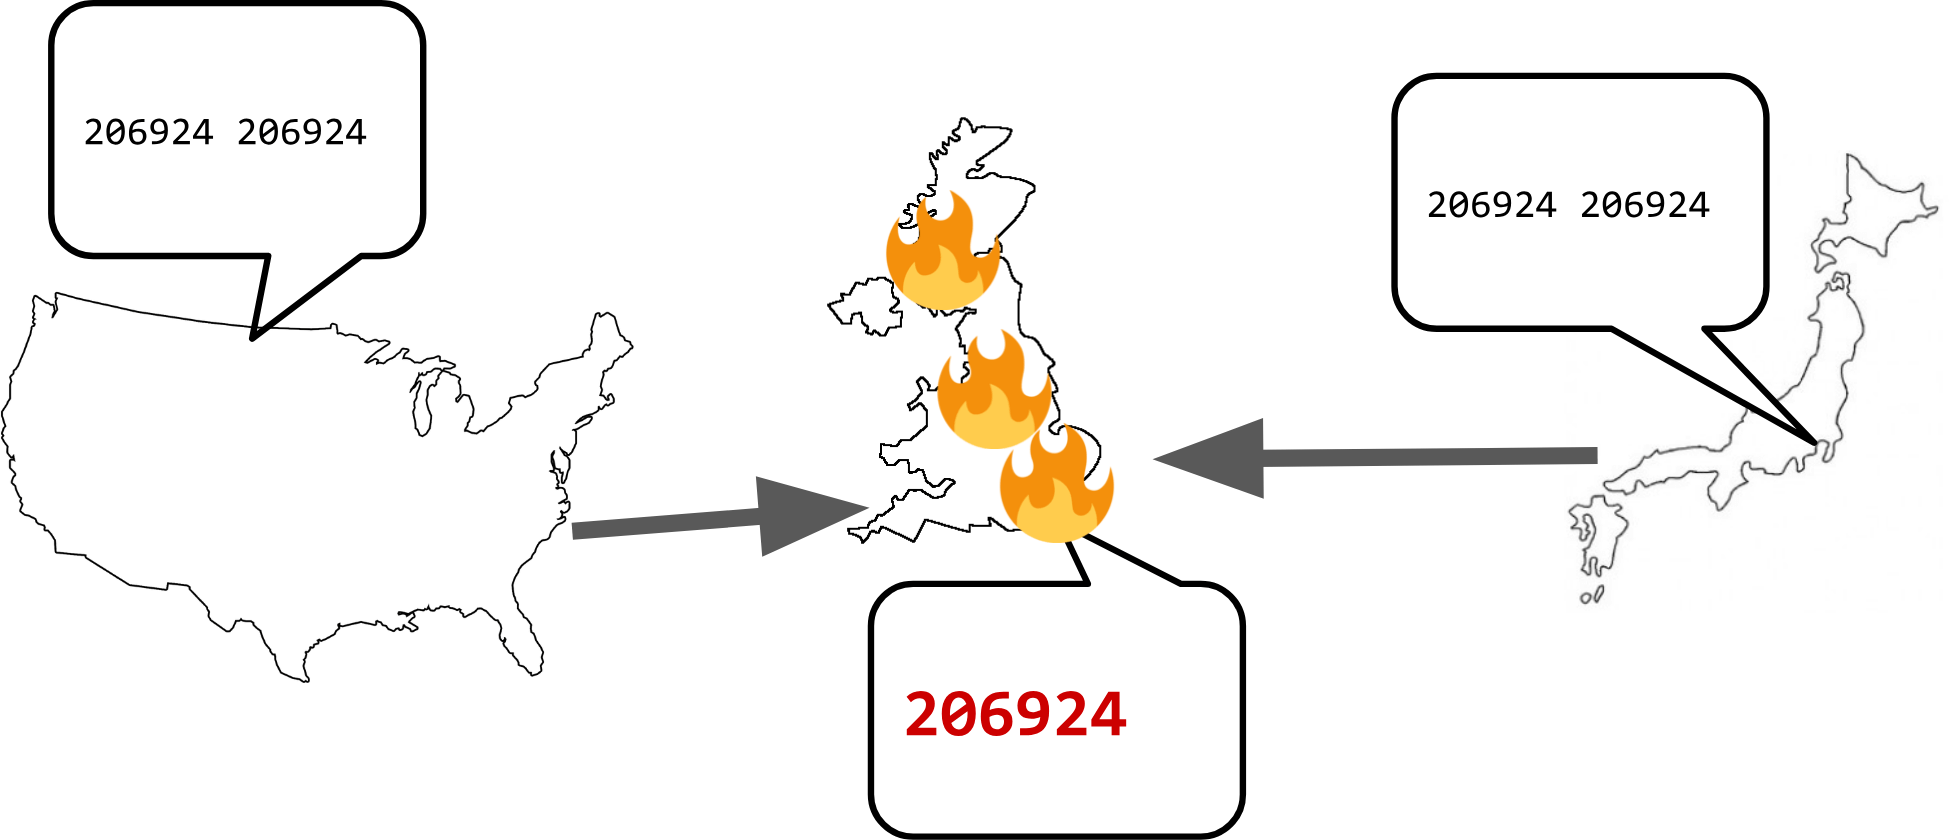 one country on fire due to announcing a too short of a AS_PATH